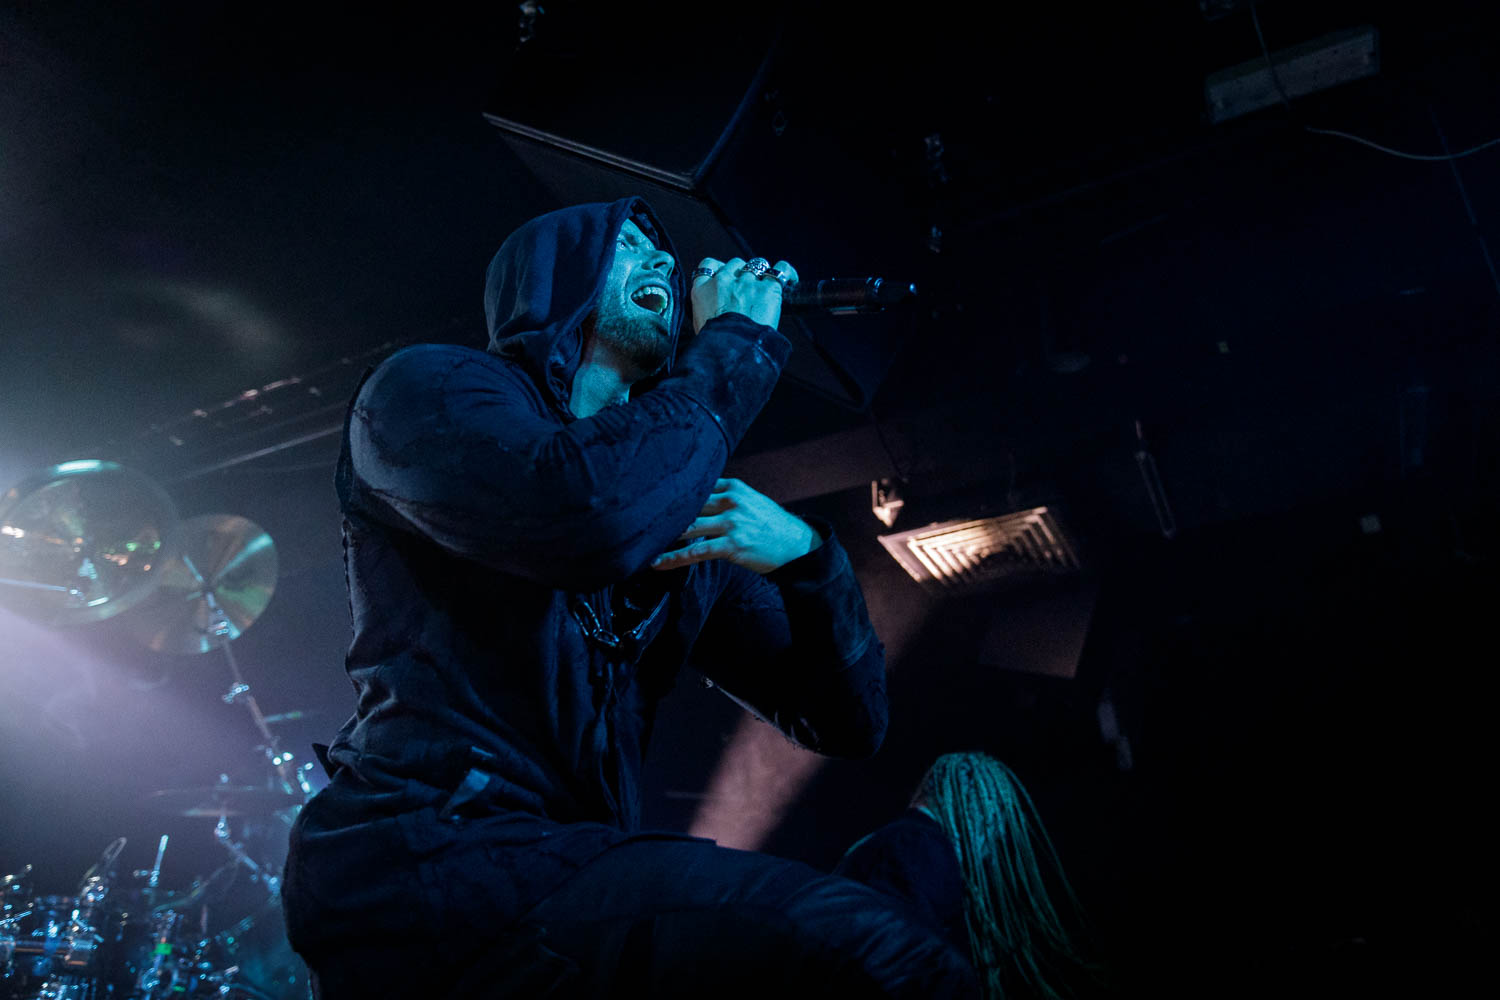 Kamelot at The Academy Club in Manchester on March 21st 2019.